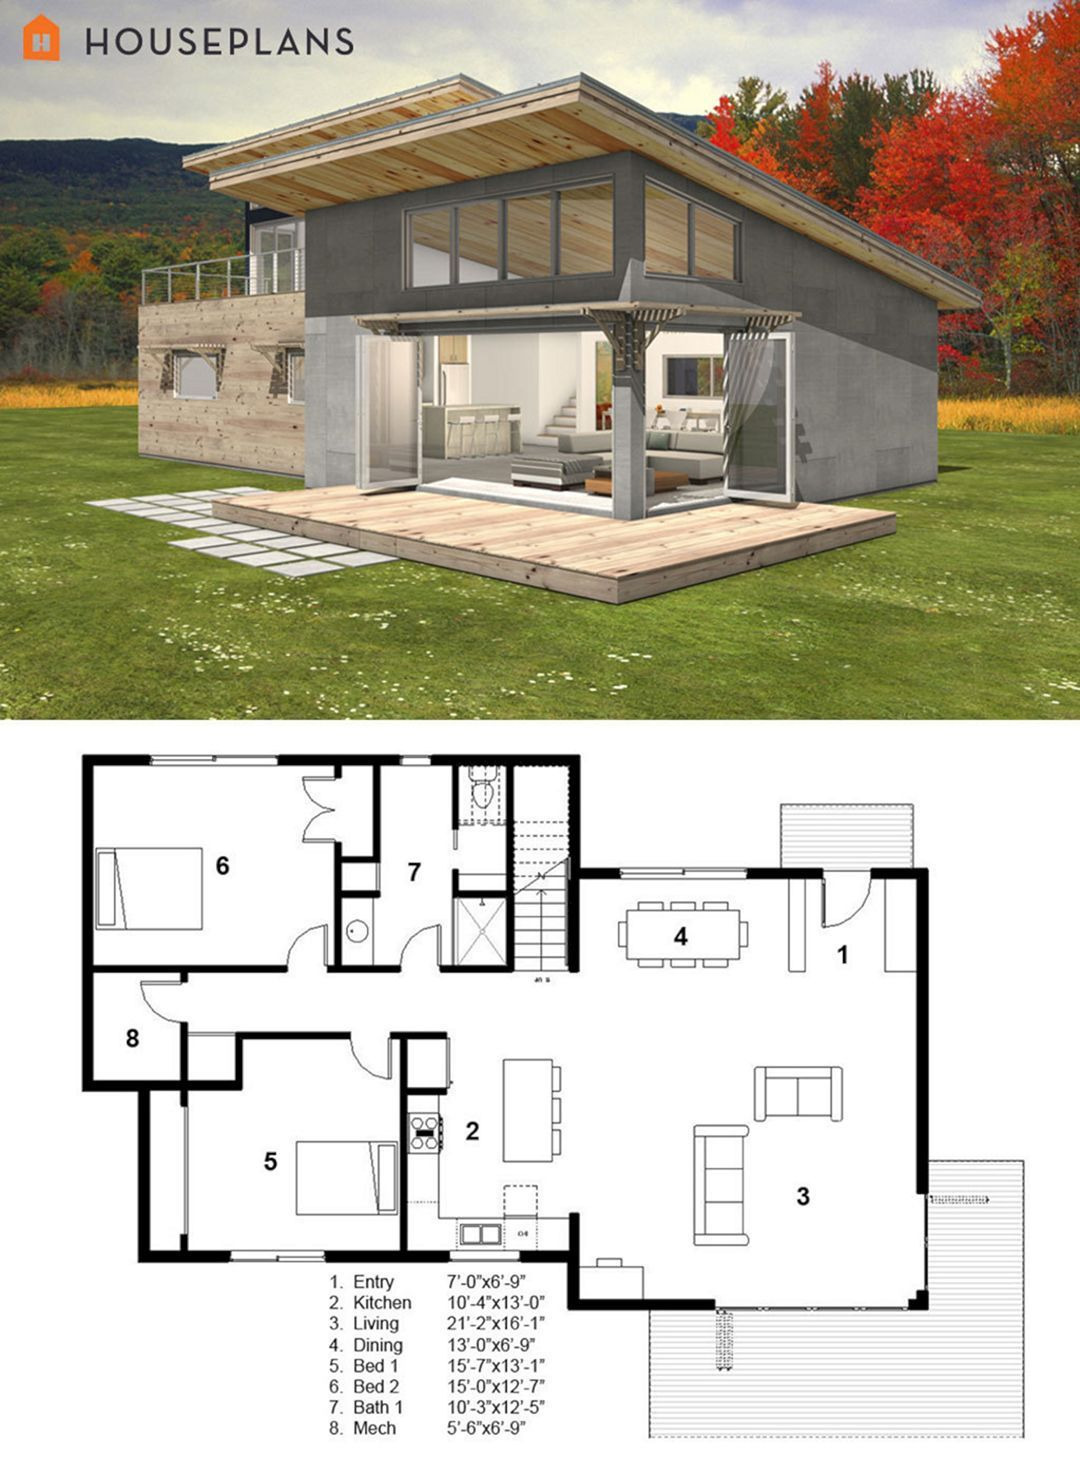 Tiny Small House Plans Beautiful the Best Modern Tiny House Design Small Homes Inspirations